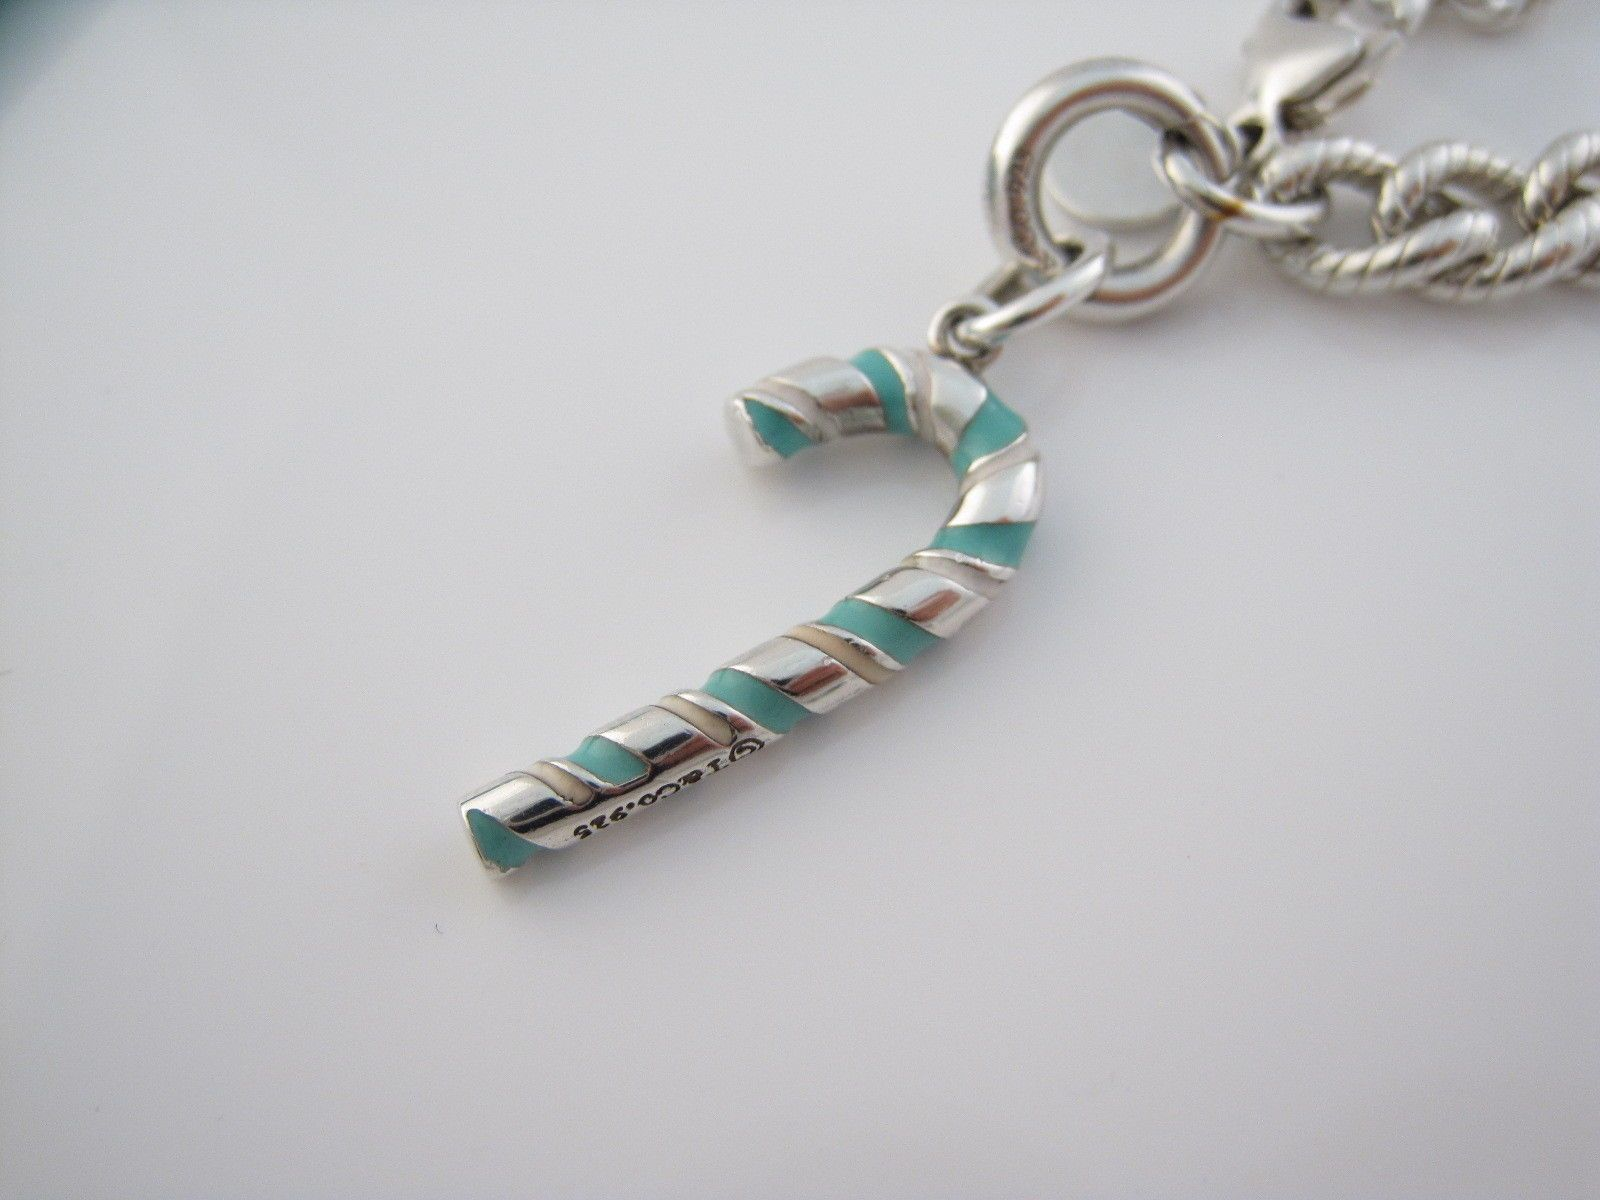 f8d779445882 Details about Tiffany   Co Silver Blue Enamel Candy Cane Charm ...